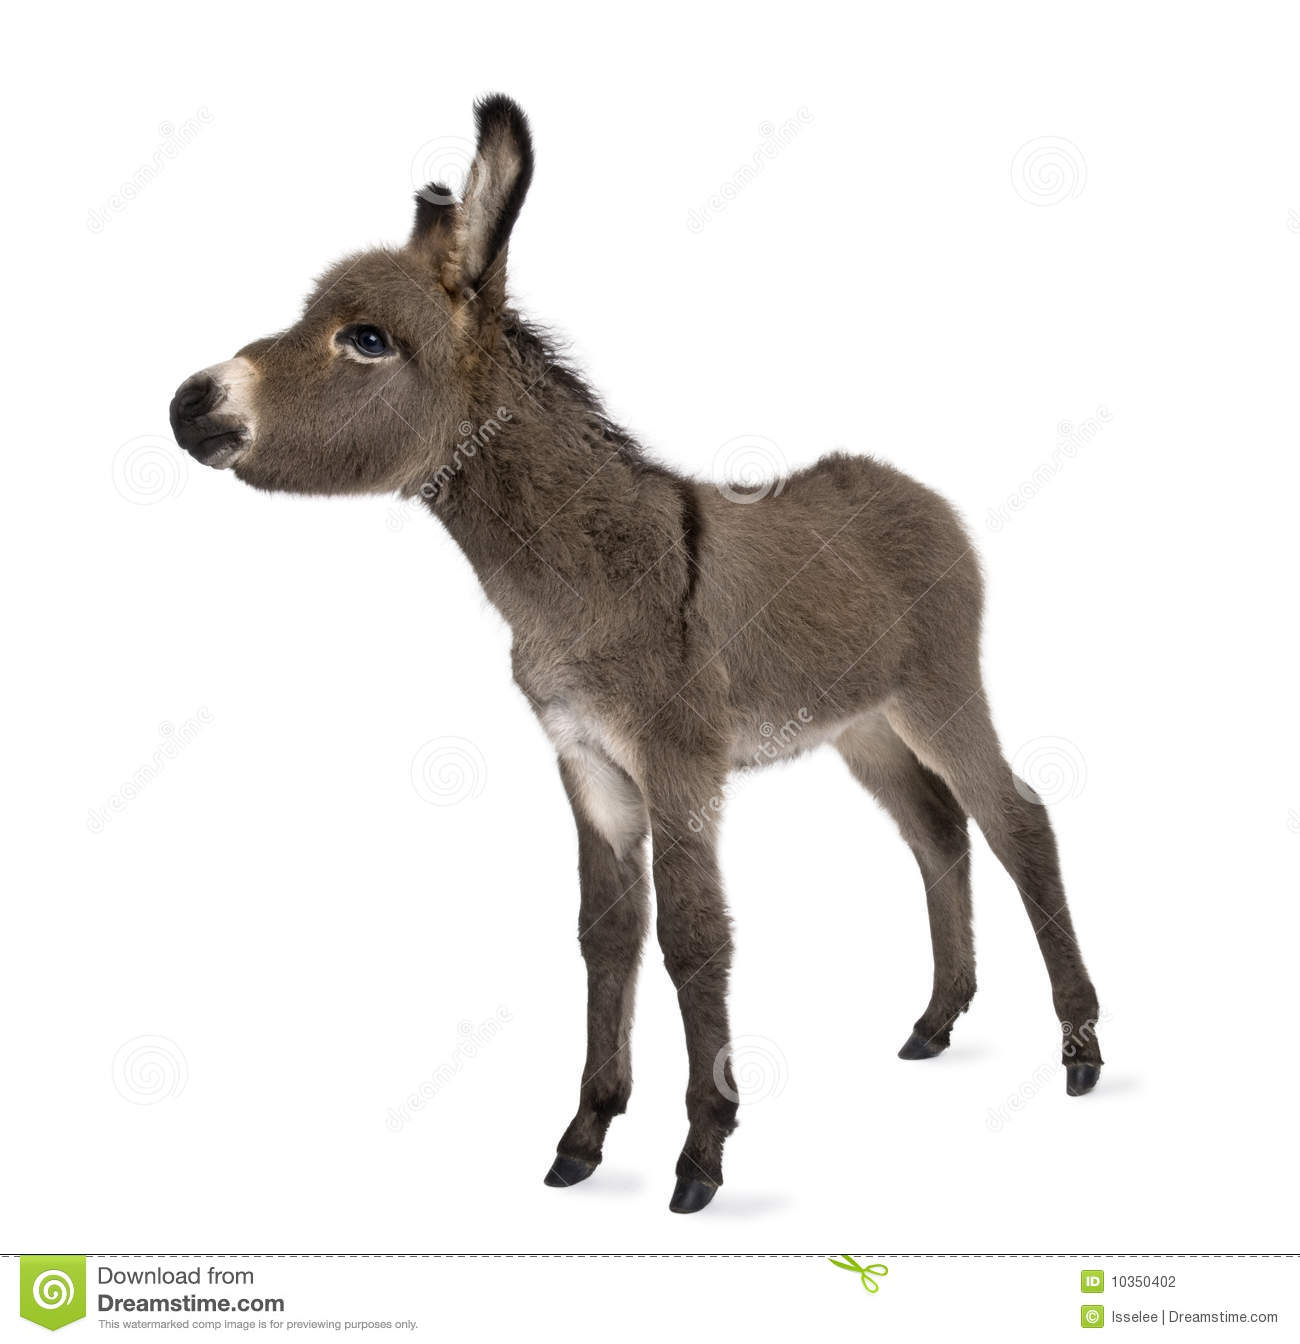 Donkey foal 2 months stock photo image of studio full for Burro blanco